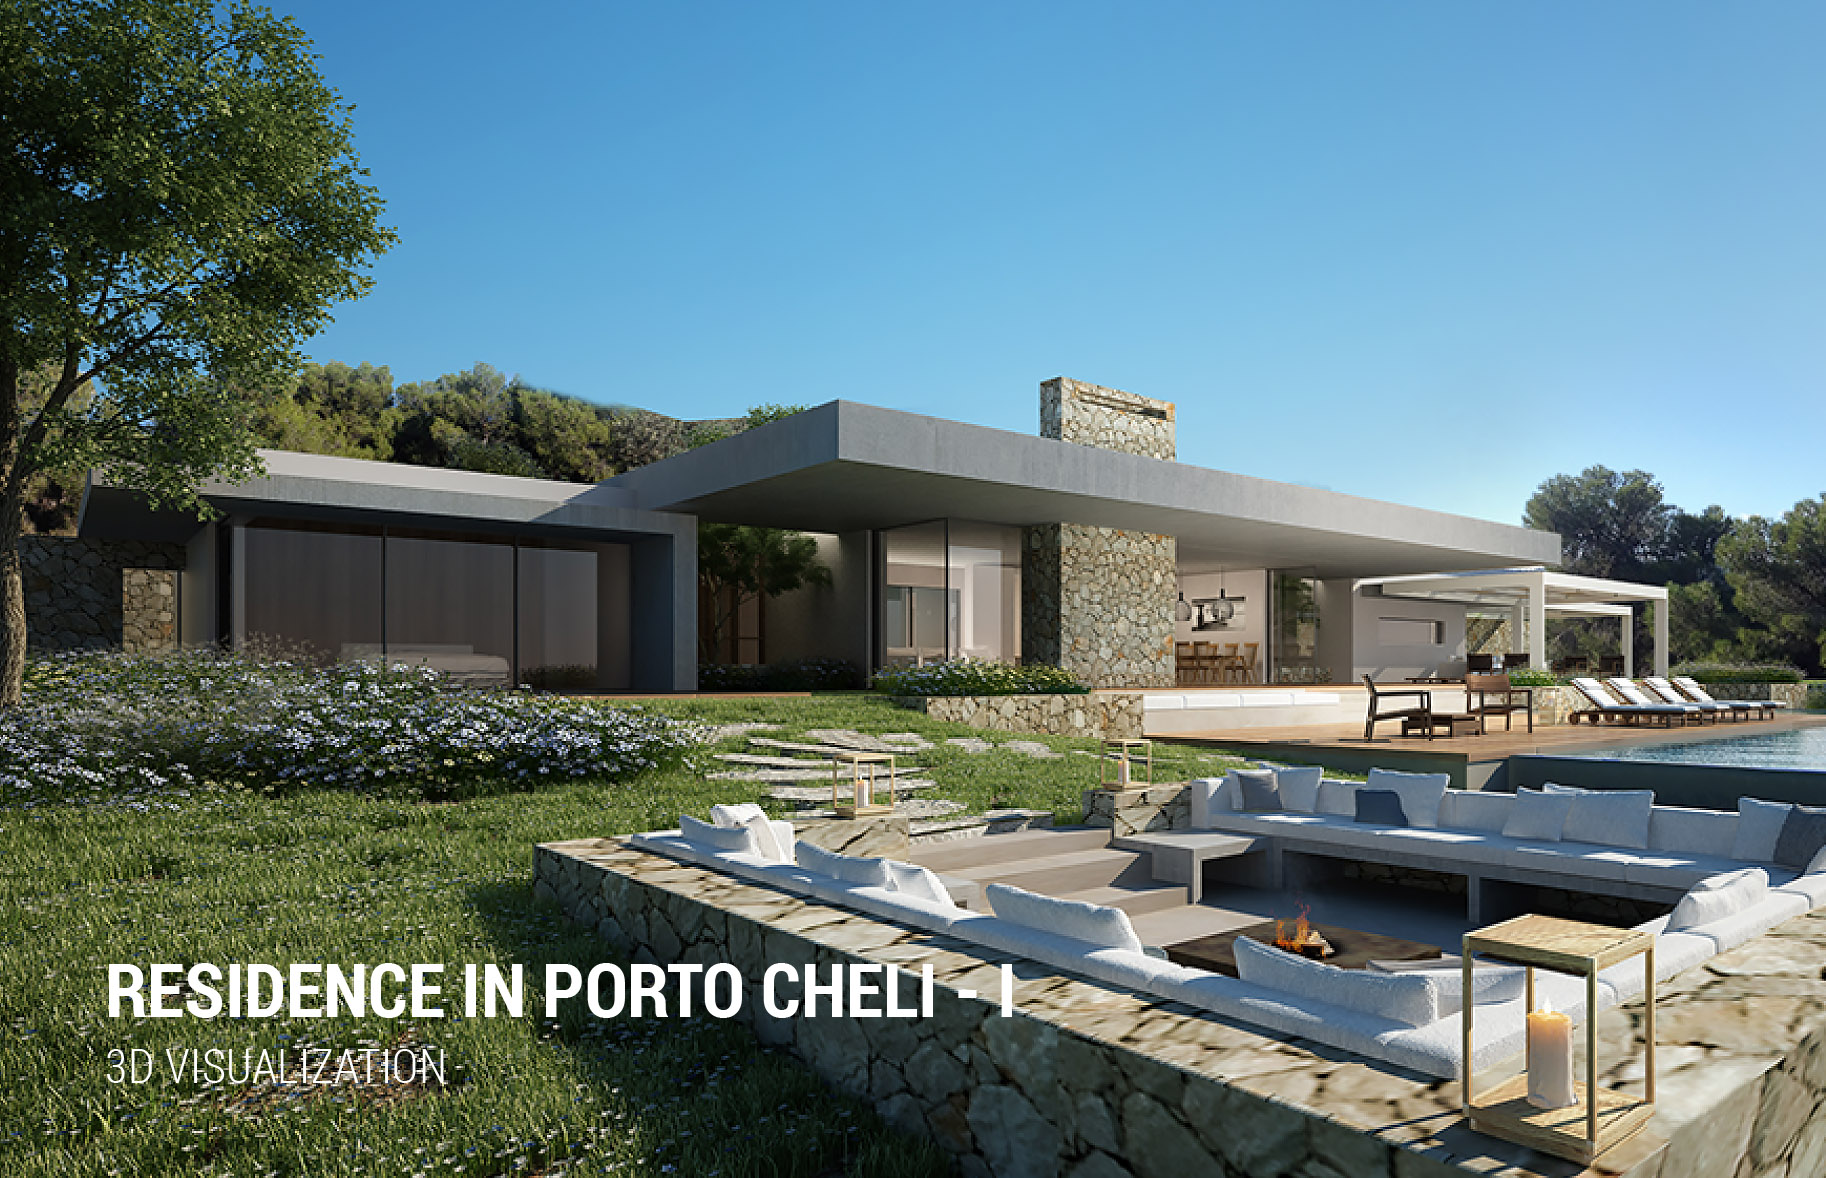 Schema Dimitra Chrona designer, creative director, architectural, 3D visualization, 3D Rendering, branding websites, digital, graphic design, interior design, real estate, luxury property, staging, museum, virtual, art, brochures, exhibitions, logotype, logo, Canada Quebec Montreal Athens Greece schema design porto cheli residence i large over.jpg